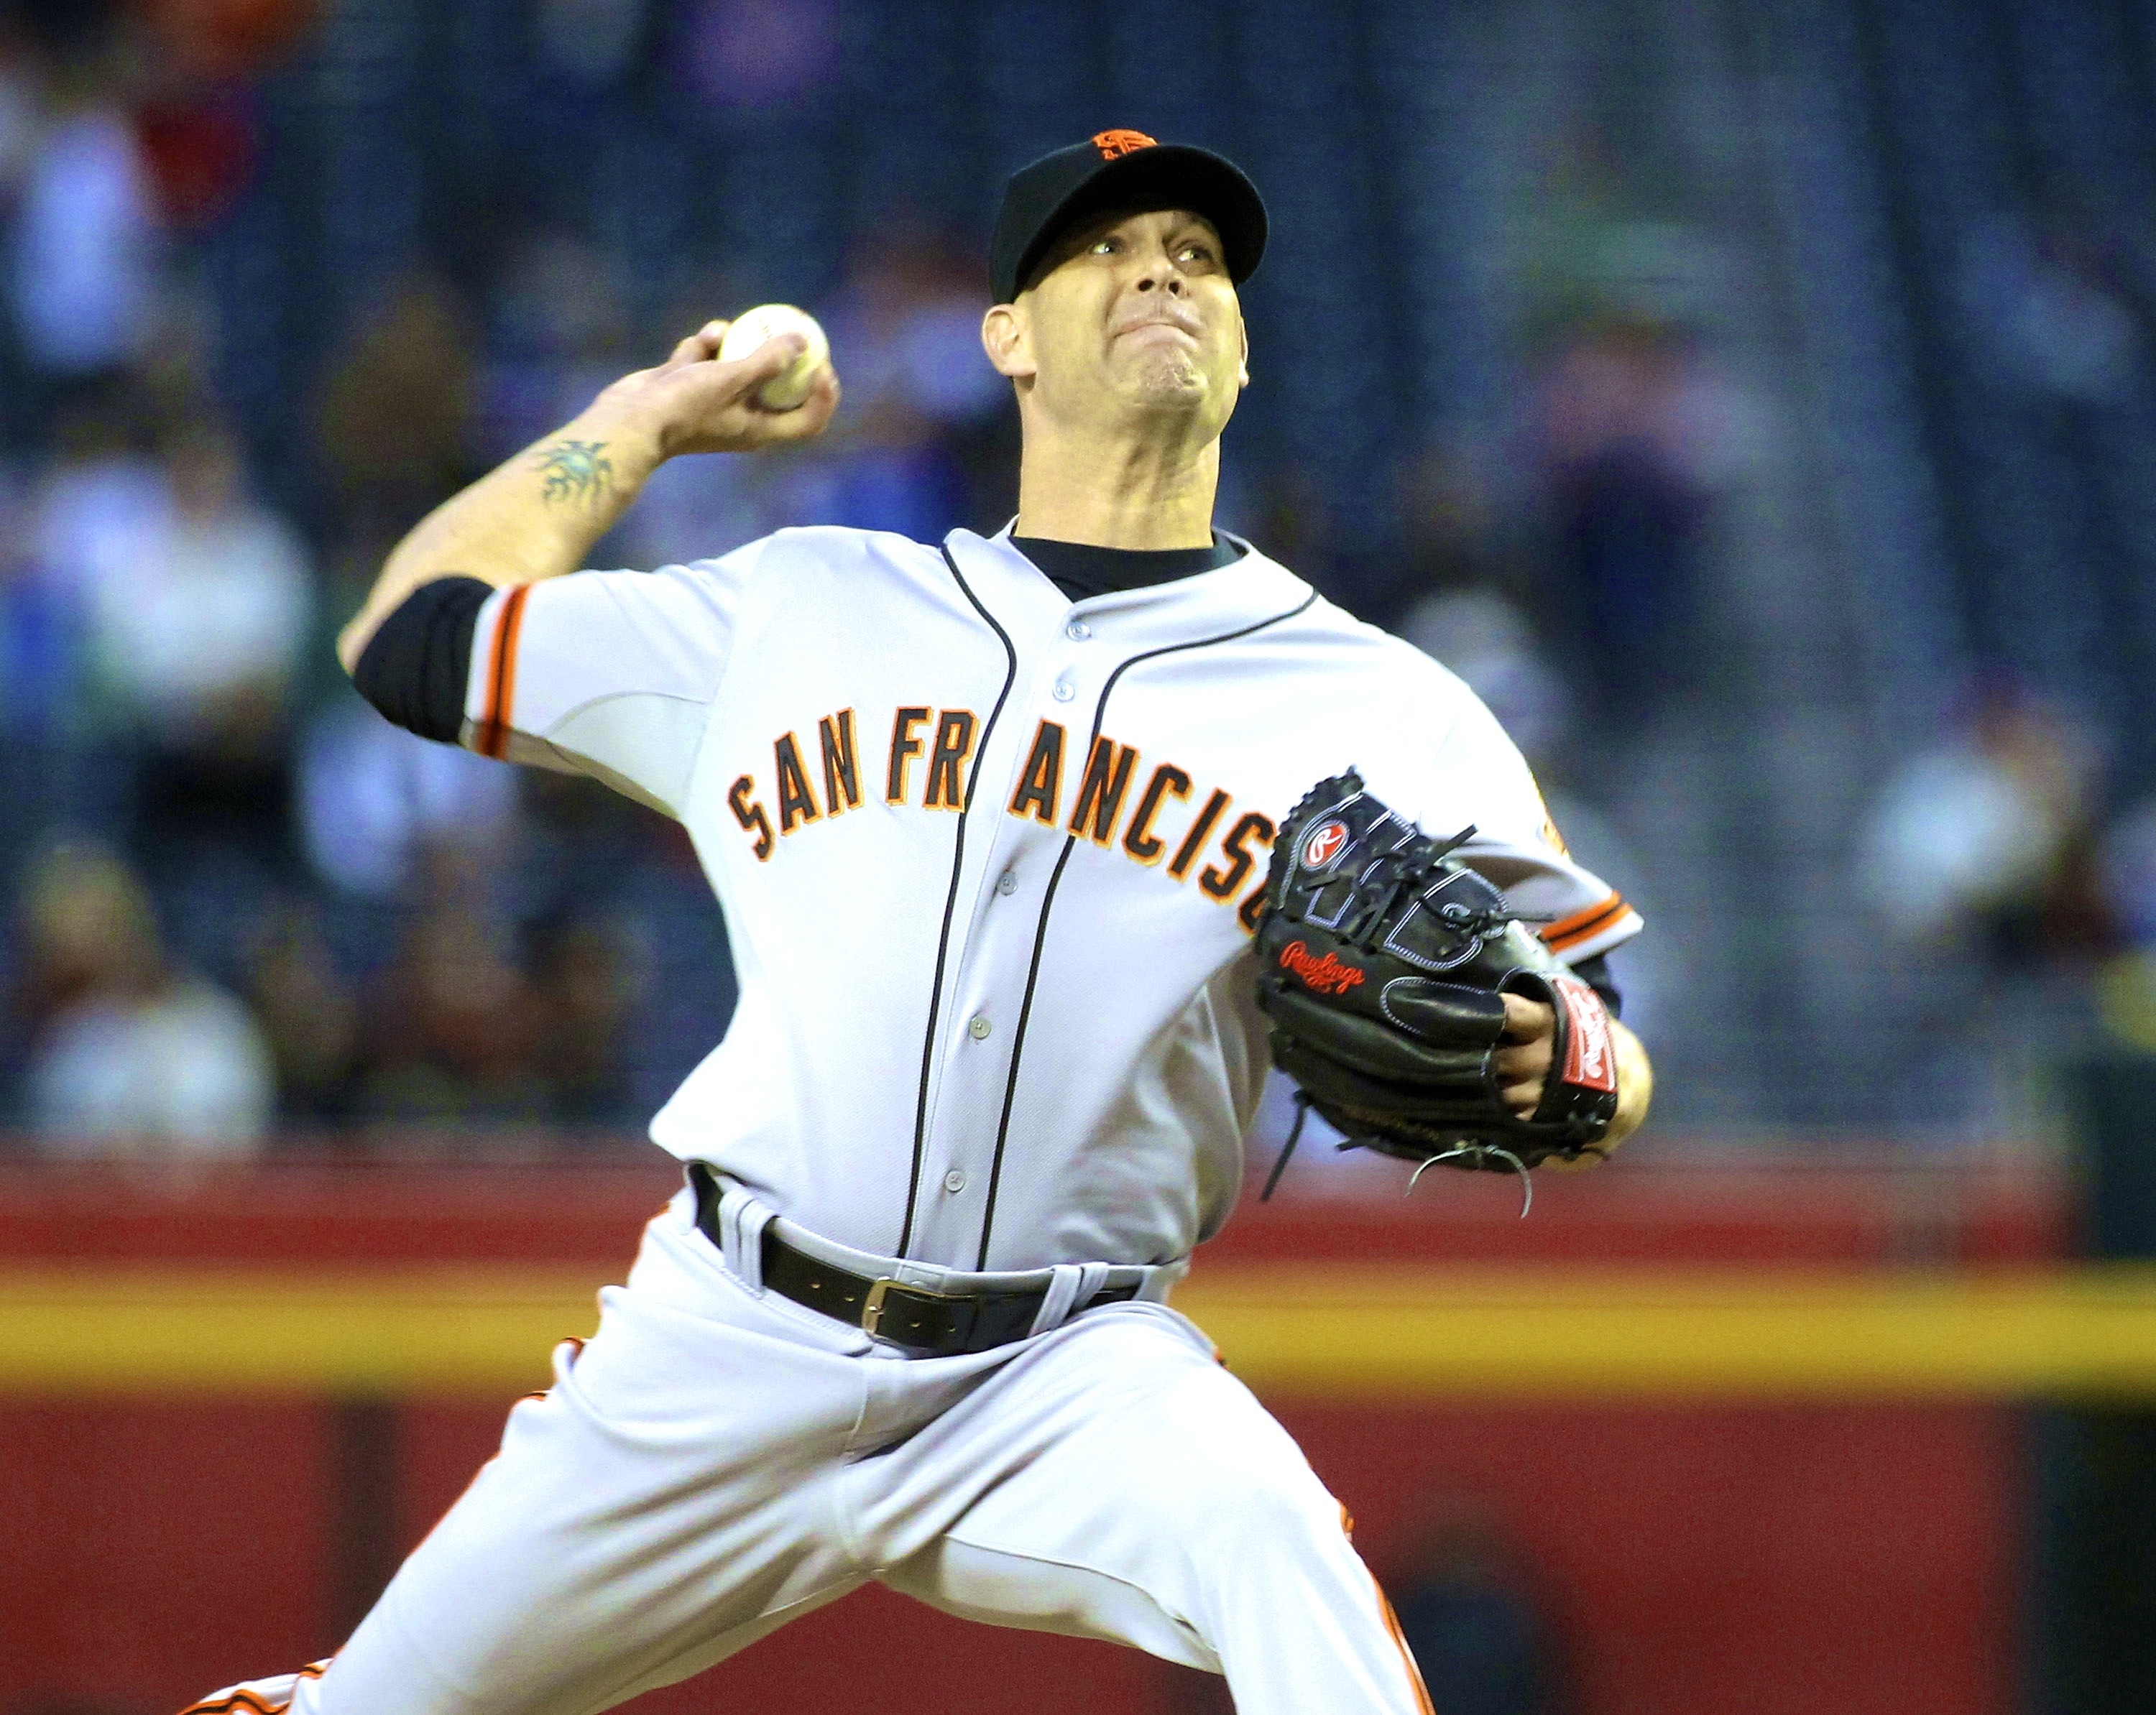 San Francisco Giants' Tim Hudson throws a pitch against the Arizona Diamondbacks during the first inning of a baseball game, Wednesday, April 2, 2014, in Phoenix. (AP Photo/Ross D. Franklin)